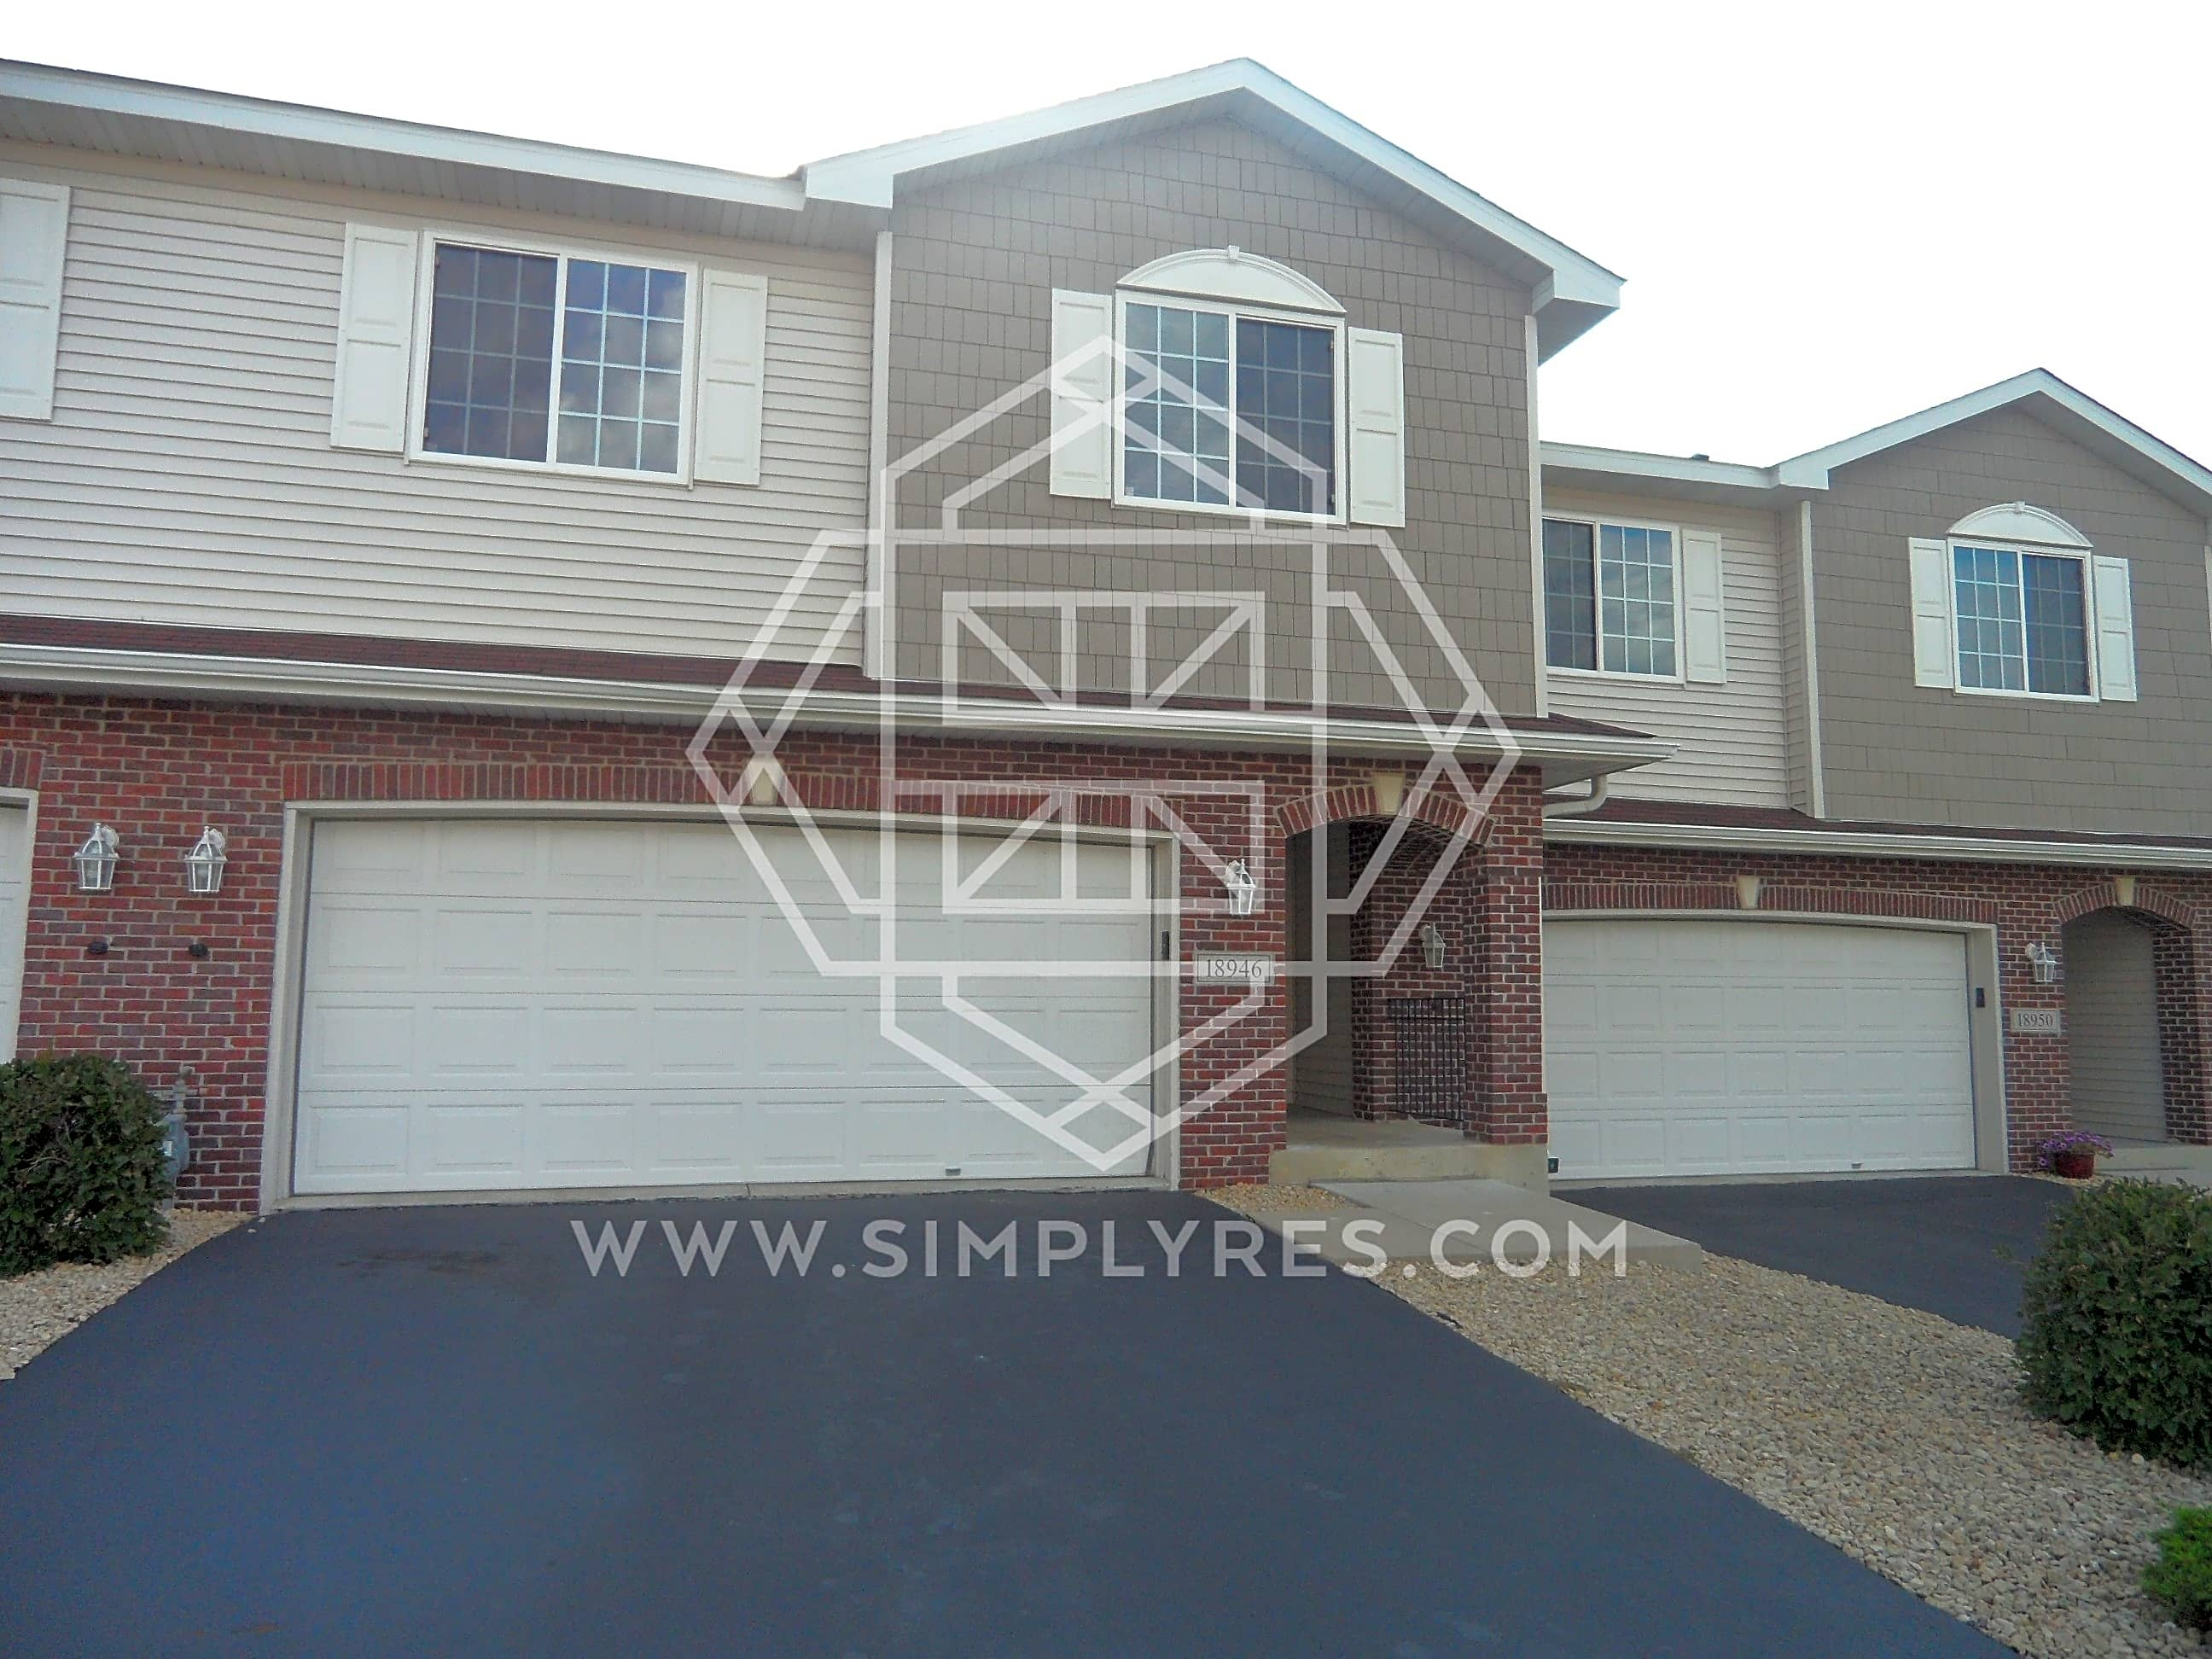 Condo for Rent in Lakeville